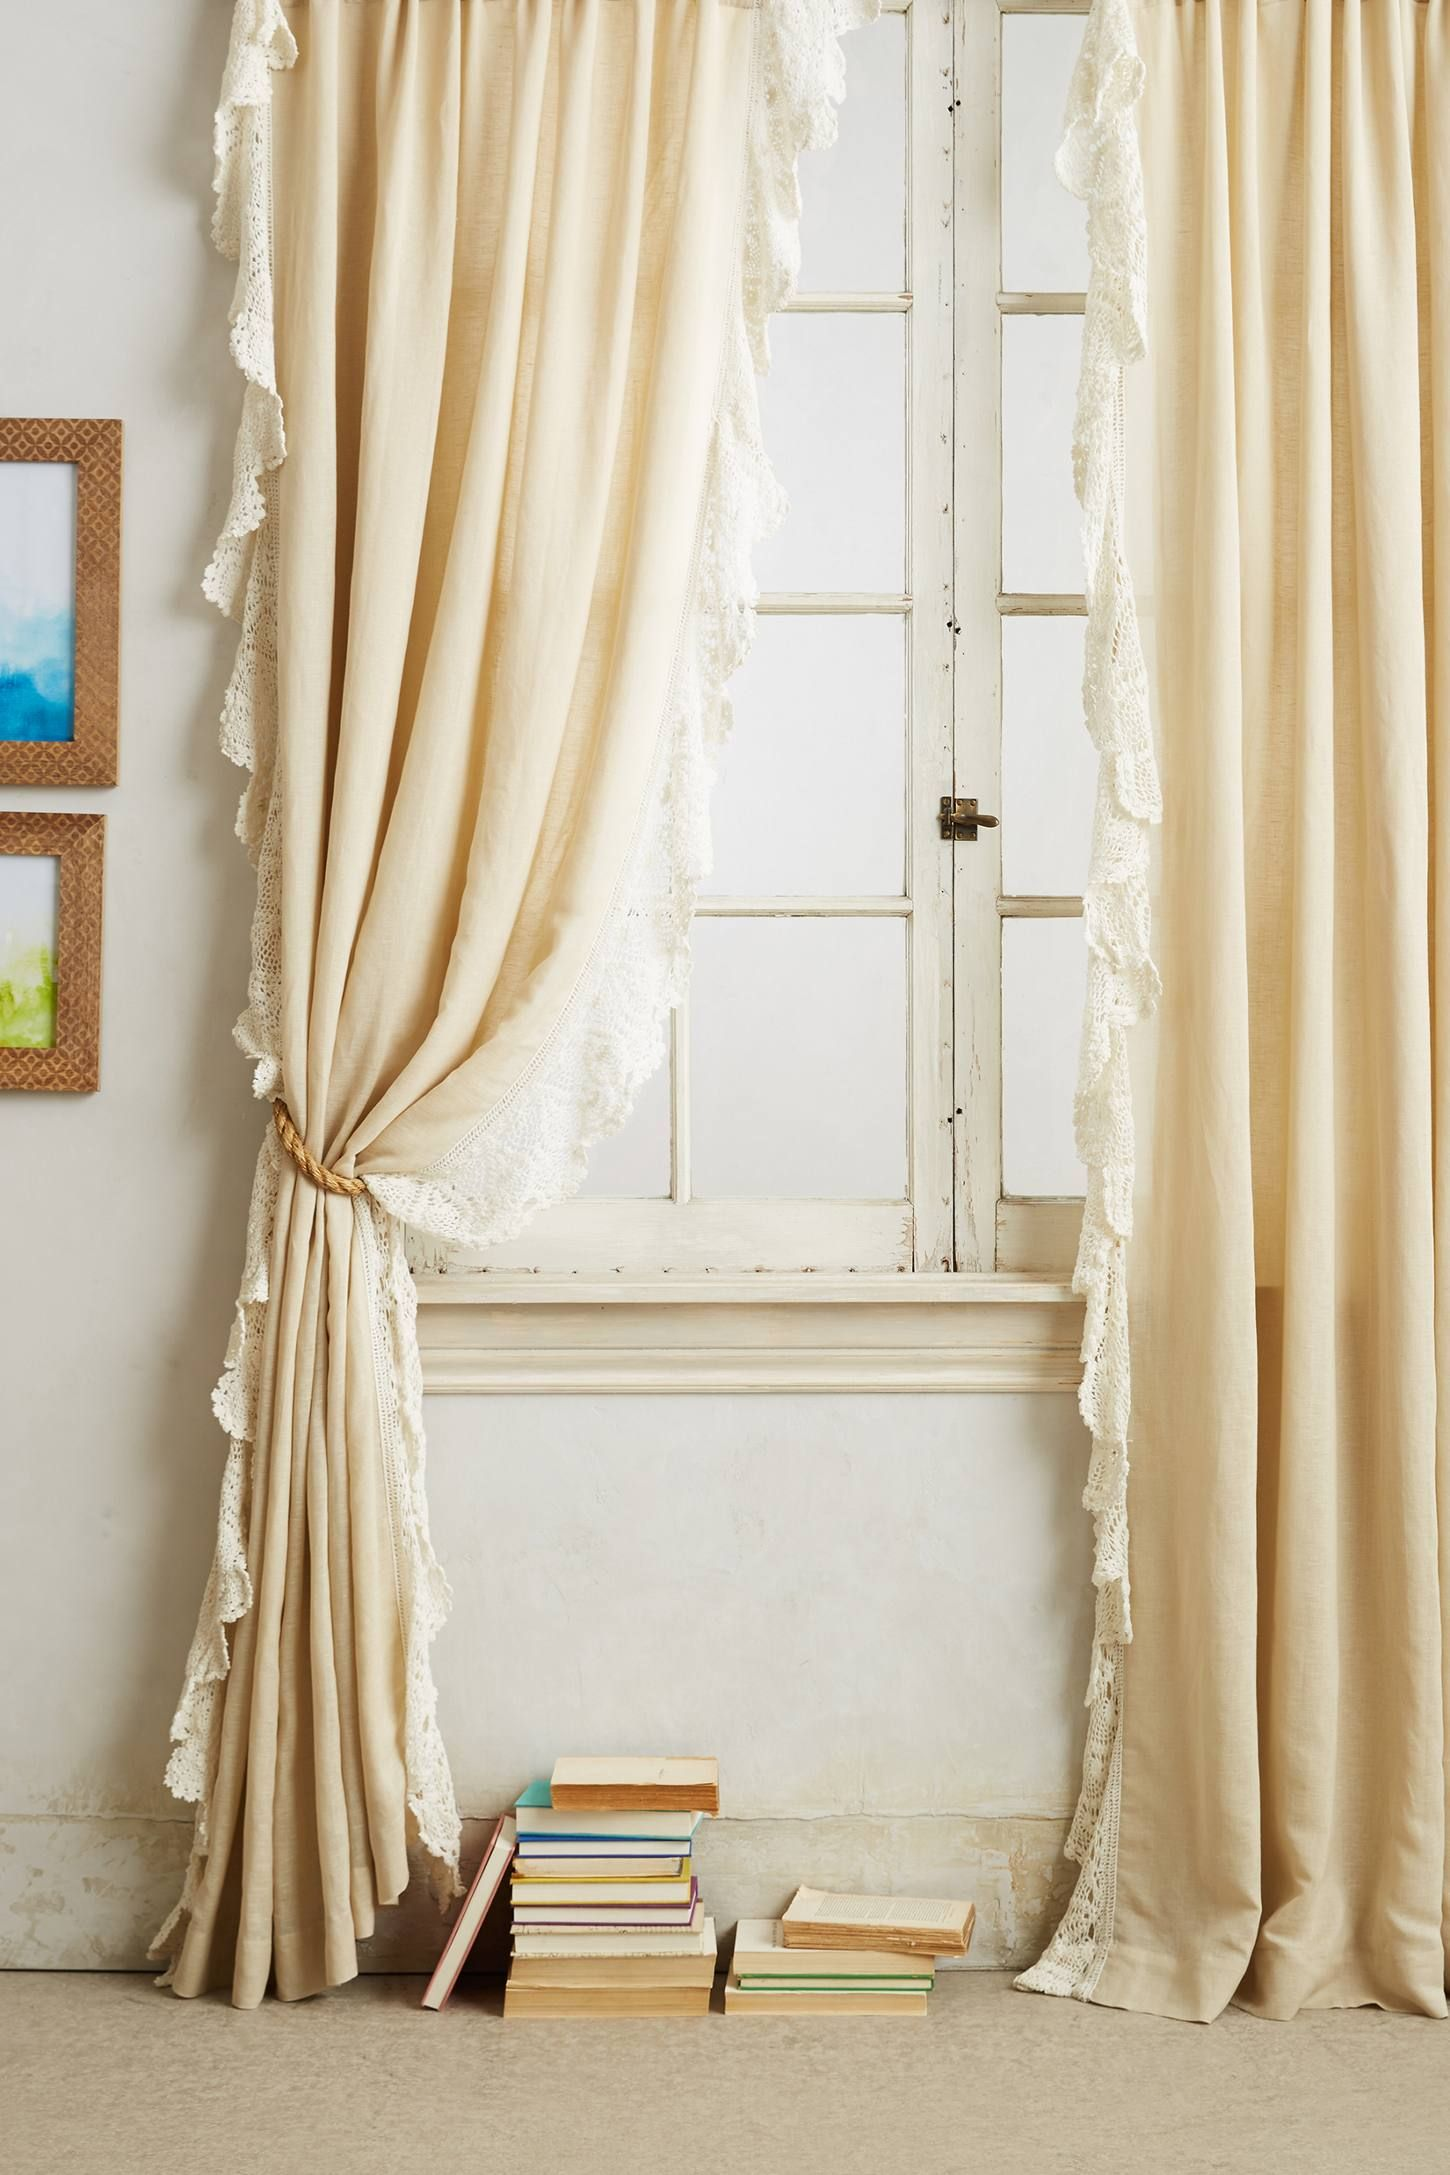 Bombay Tassel Finials Home Decor Bedrooms Lace Curtains